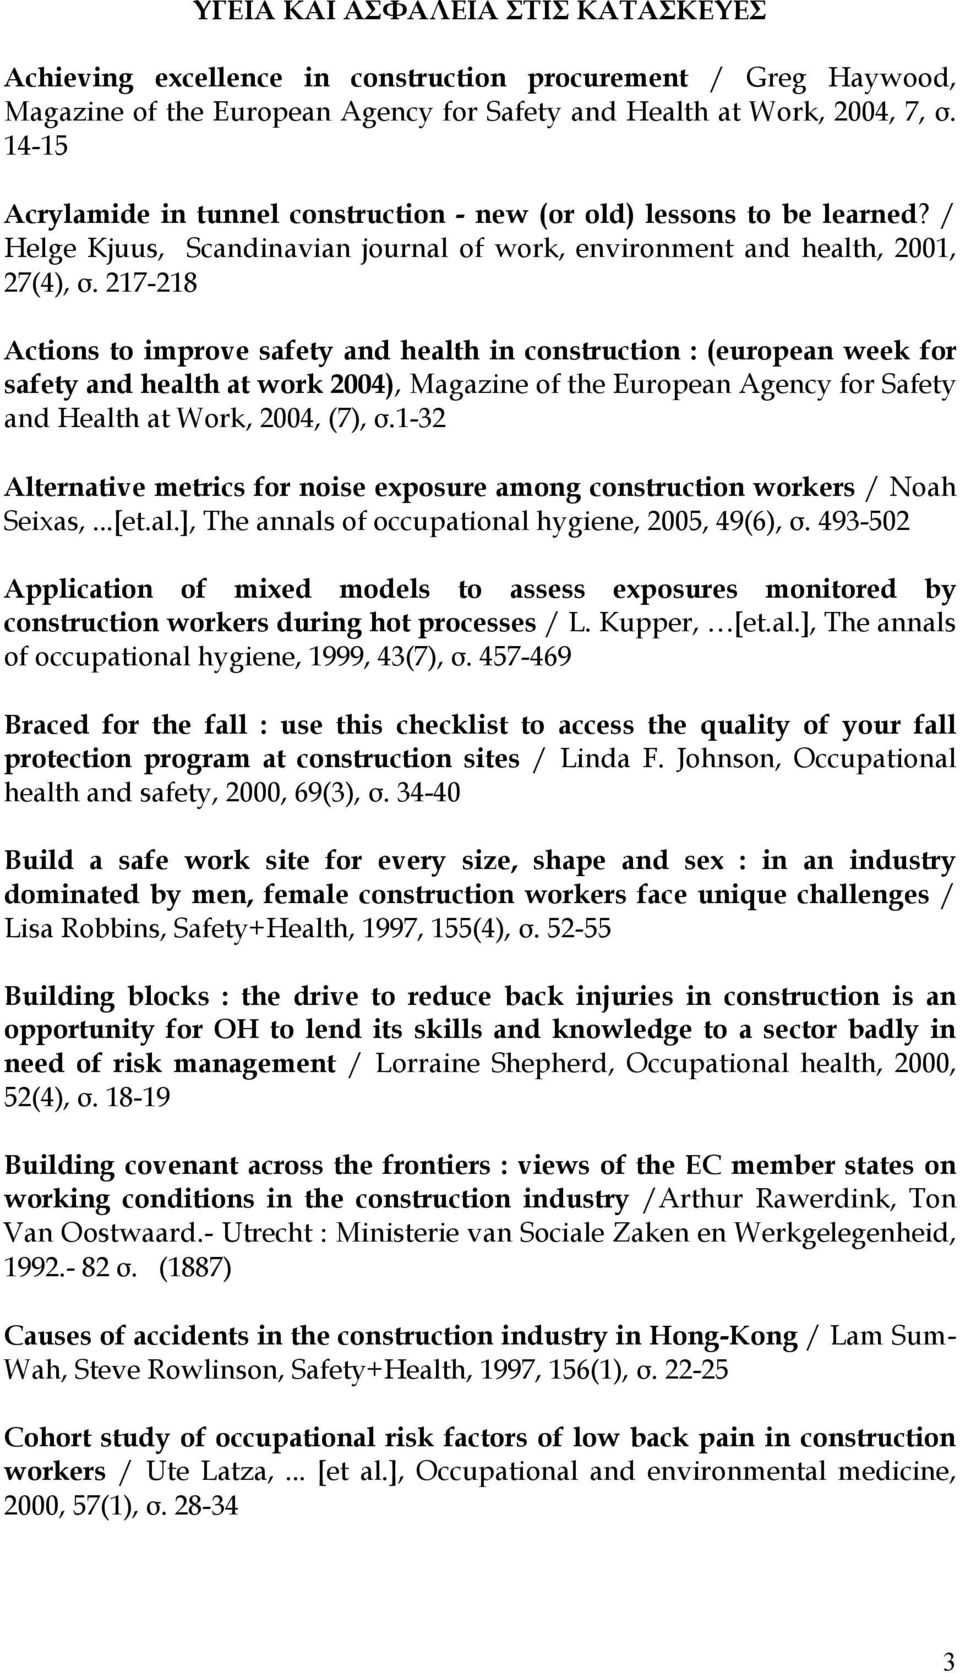 217-218 Actions to improve safety and health in construction : (european week for safety and health at work 2004), Magazine of the European Agency for Safety and Health at Work, 2004, (7), σ.